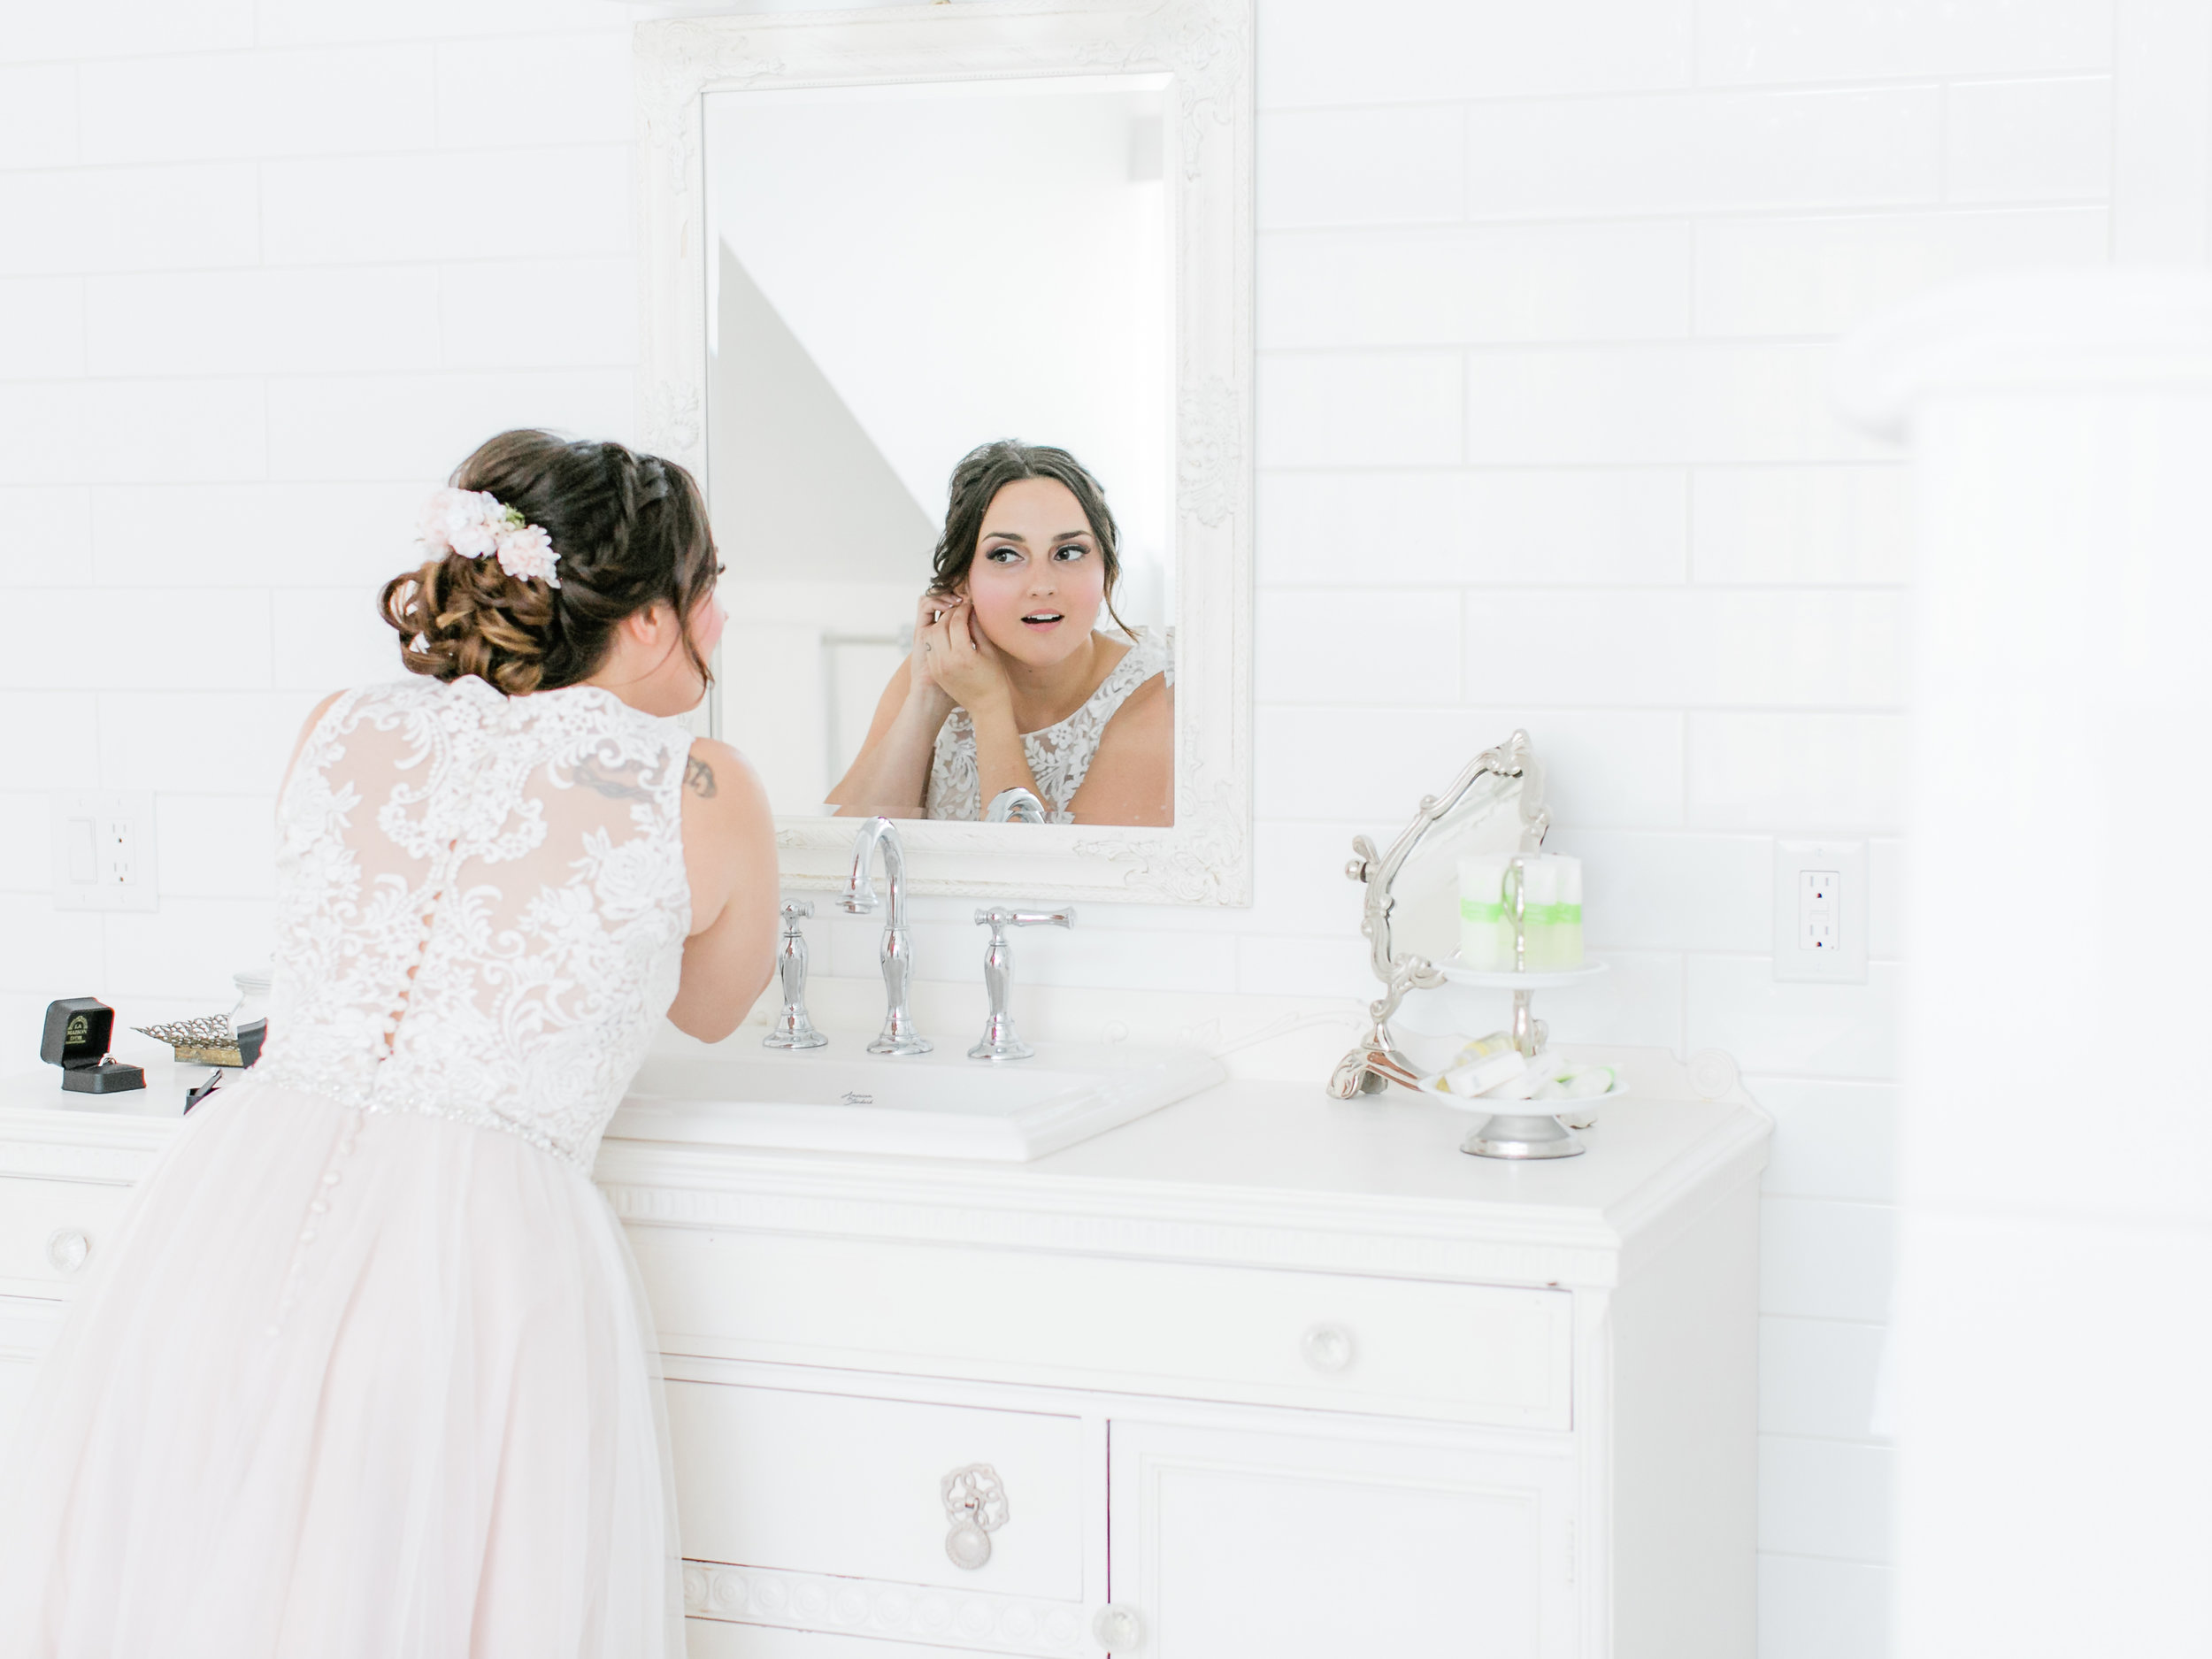 7. Sneak Peeks - Within a week we will be sharing some of our favourite moments from your big day. Within 3-4 weeks you will be receiving the full gallery in your inbox!